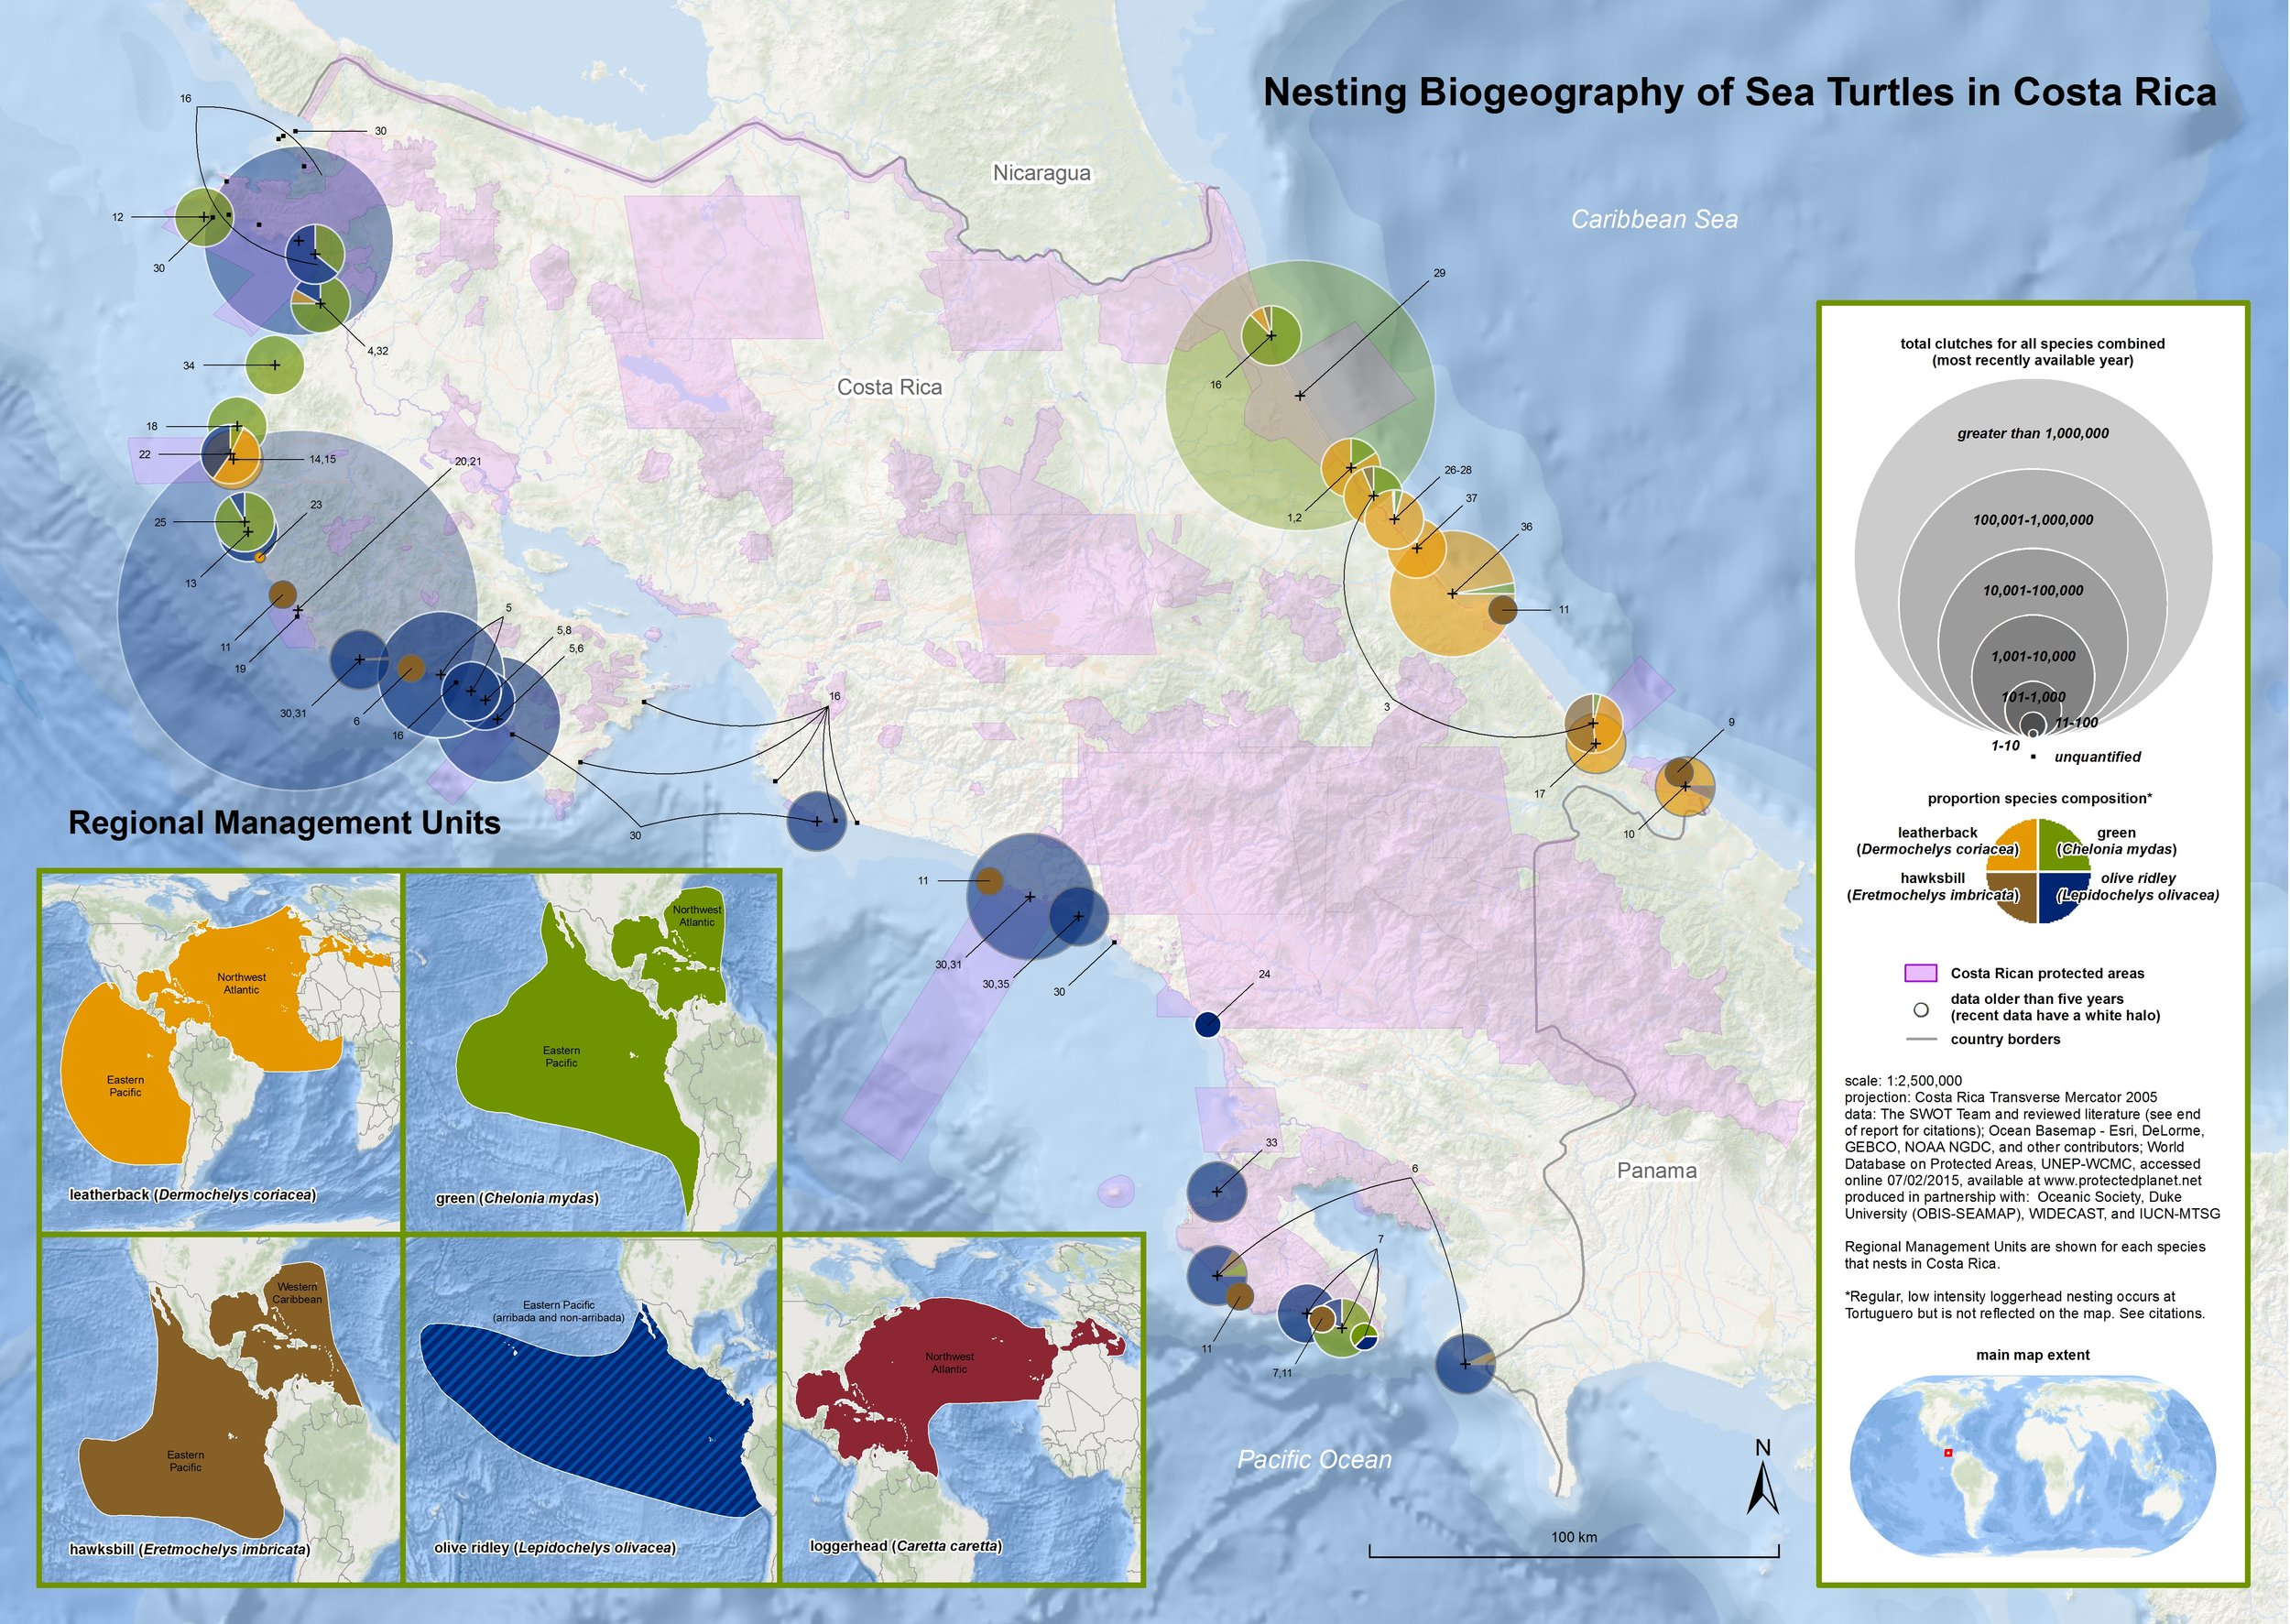 The first comprehensive map of sea turtle nesting biogeography in Costa Rica, produced in collaboration with dozens of individuals and organizations. The map features nesting data from 60 beaches on both the Pacific and Caribbean coasts, covering four species: green, leatherback, hawksbill, and olive ridley. While loggerhead turtles have also been recorded nesting at Tortuguero on the Caribbean coast, they were omitted from the map because their presence is considered sporadic. We have also included Costa Rican protected areas on the map in order to highlight the protection afforded to many key sea turtle nesting sites, as well as to draw attention to current gaps in protection; these are discussed in greater detail throughout this article. The data used to create the map were provided voluntarily to SWOT or sourced from literature and come from approximately 40 sources. Each data point is numbered to correspond with a record that includes detailed metadata and source information.  Click here  to see the complete map citations and data sources.